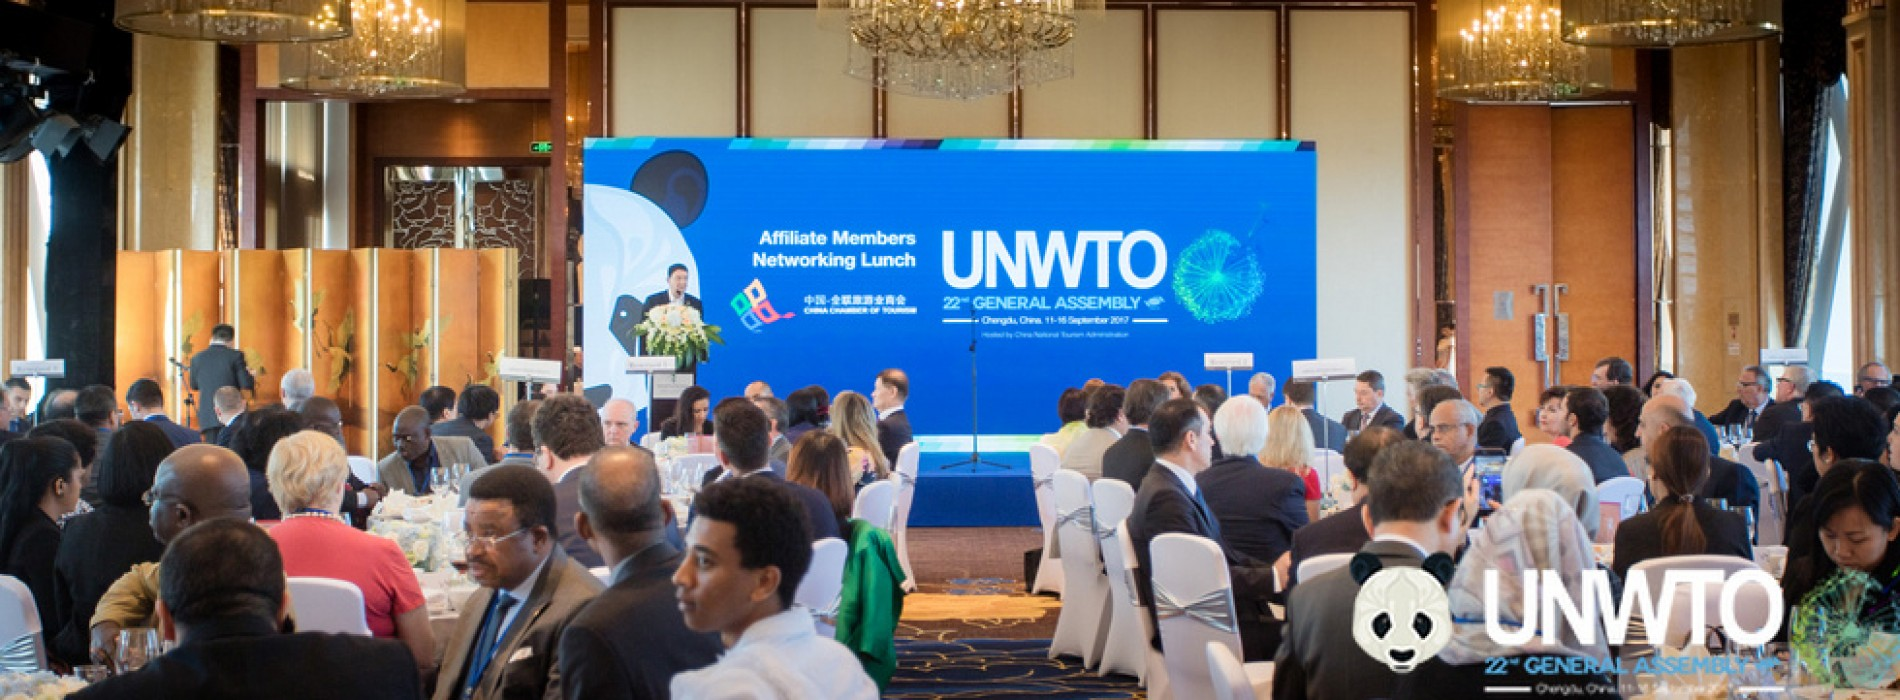 Historical decision: approval of the UNWTO Framework Convention on Tourism Ethics